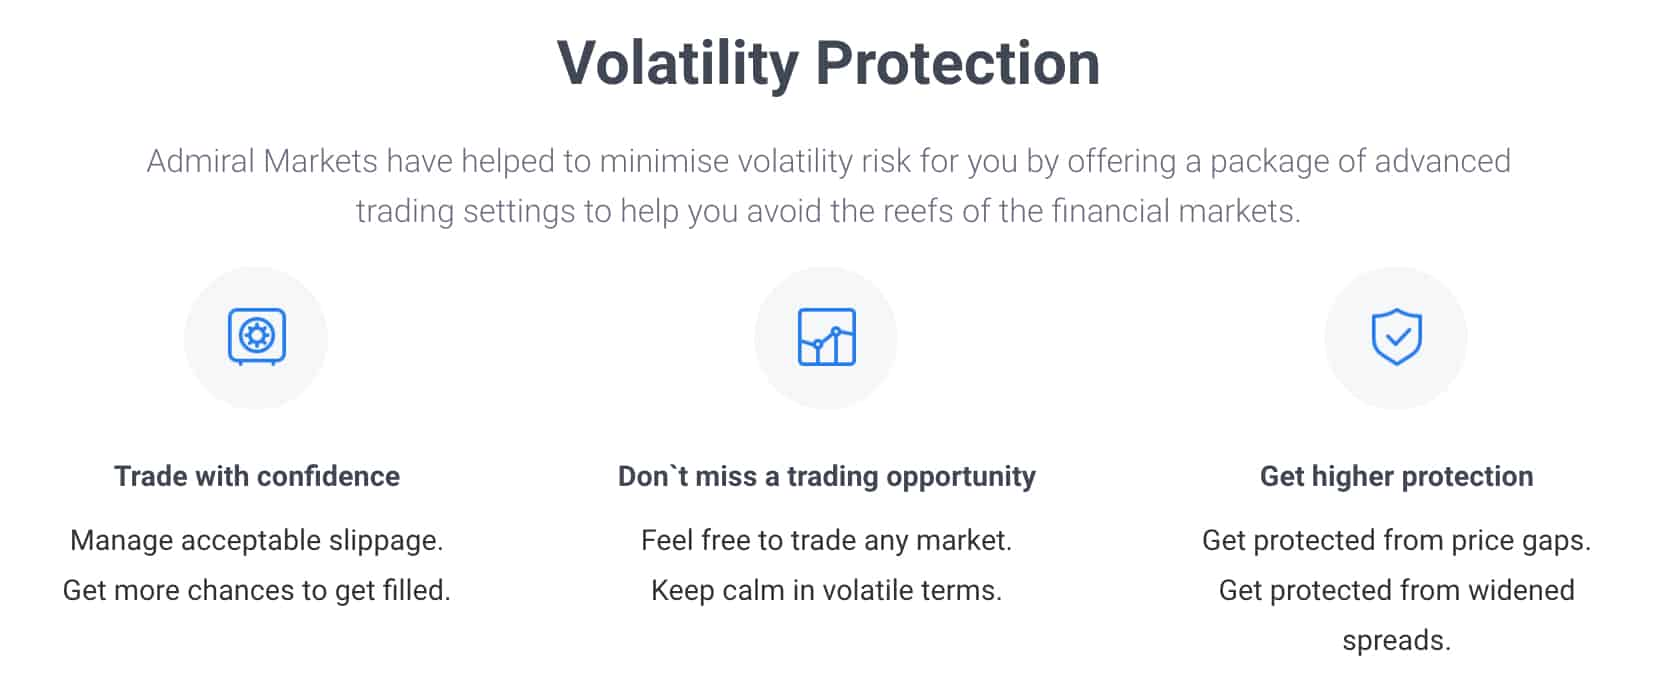 Admiral Markets Volatility Protection